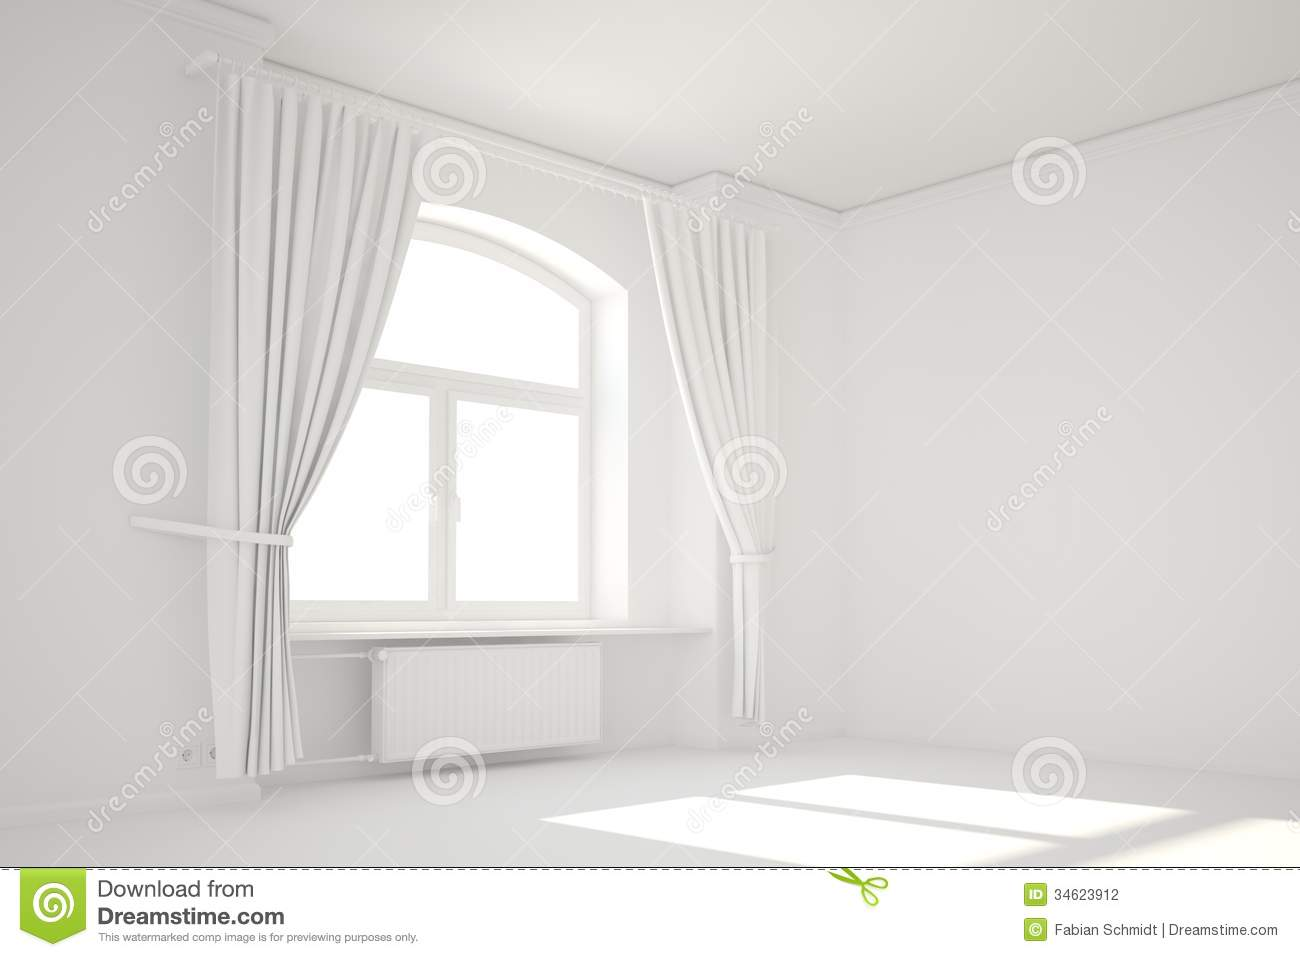 Empty White Room With Window Template System